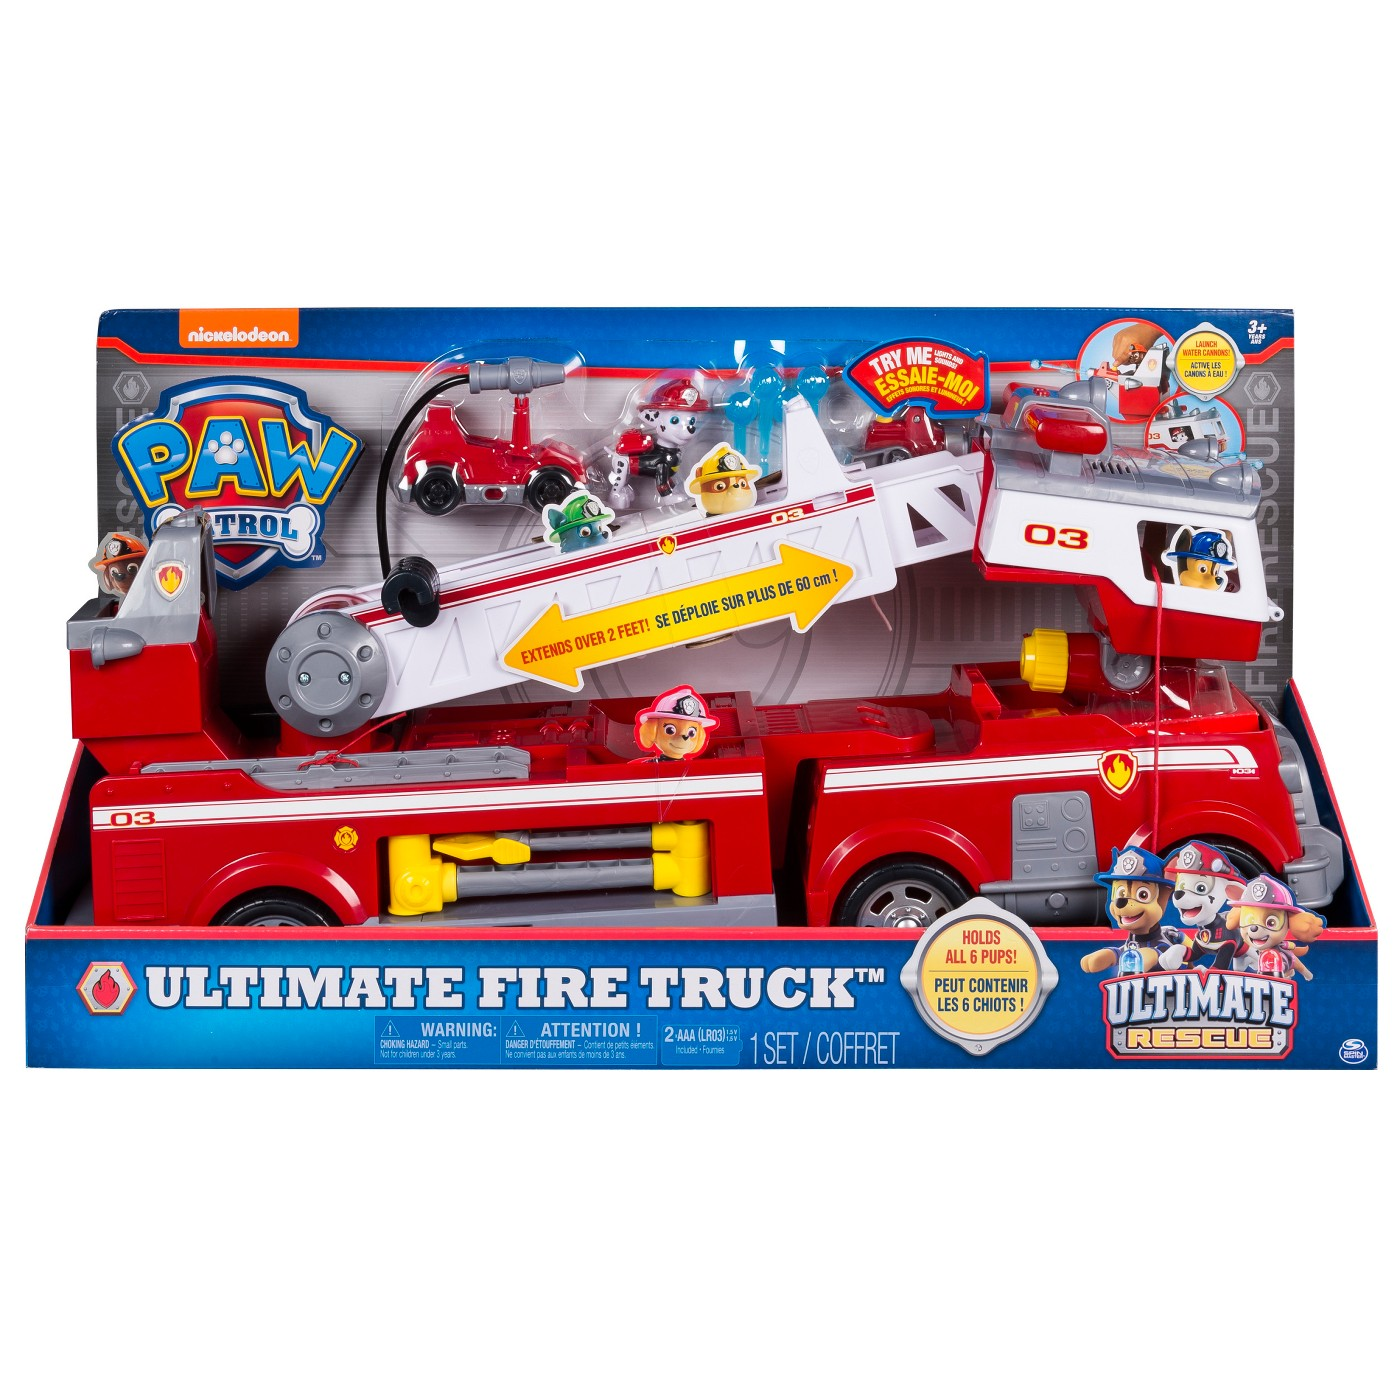 PAW Patrol Ultimate Fire Truck - image 2 of 8